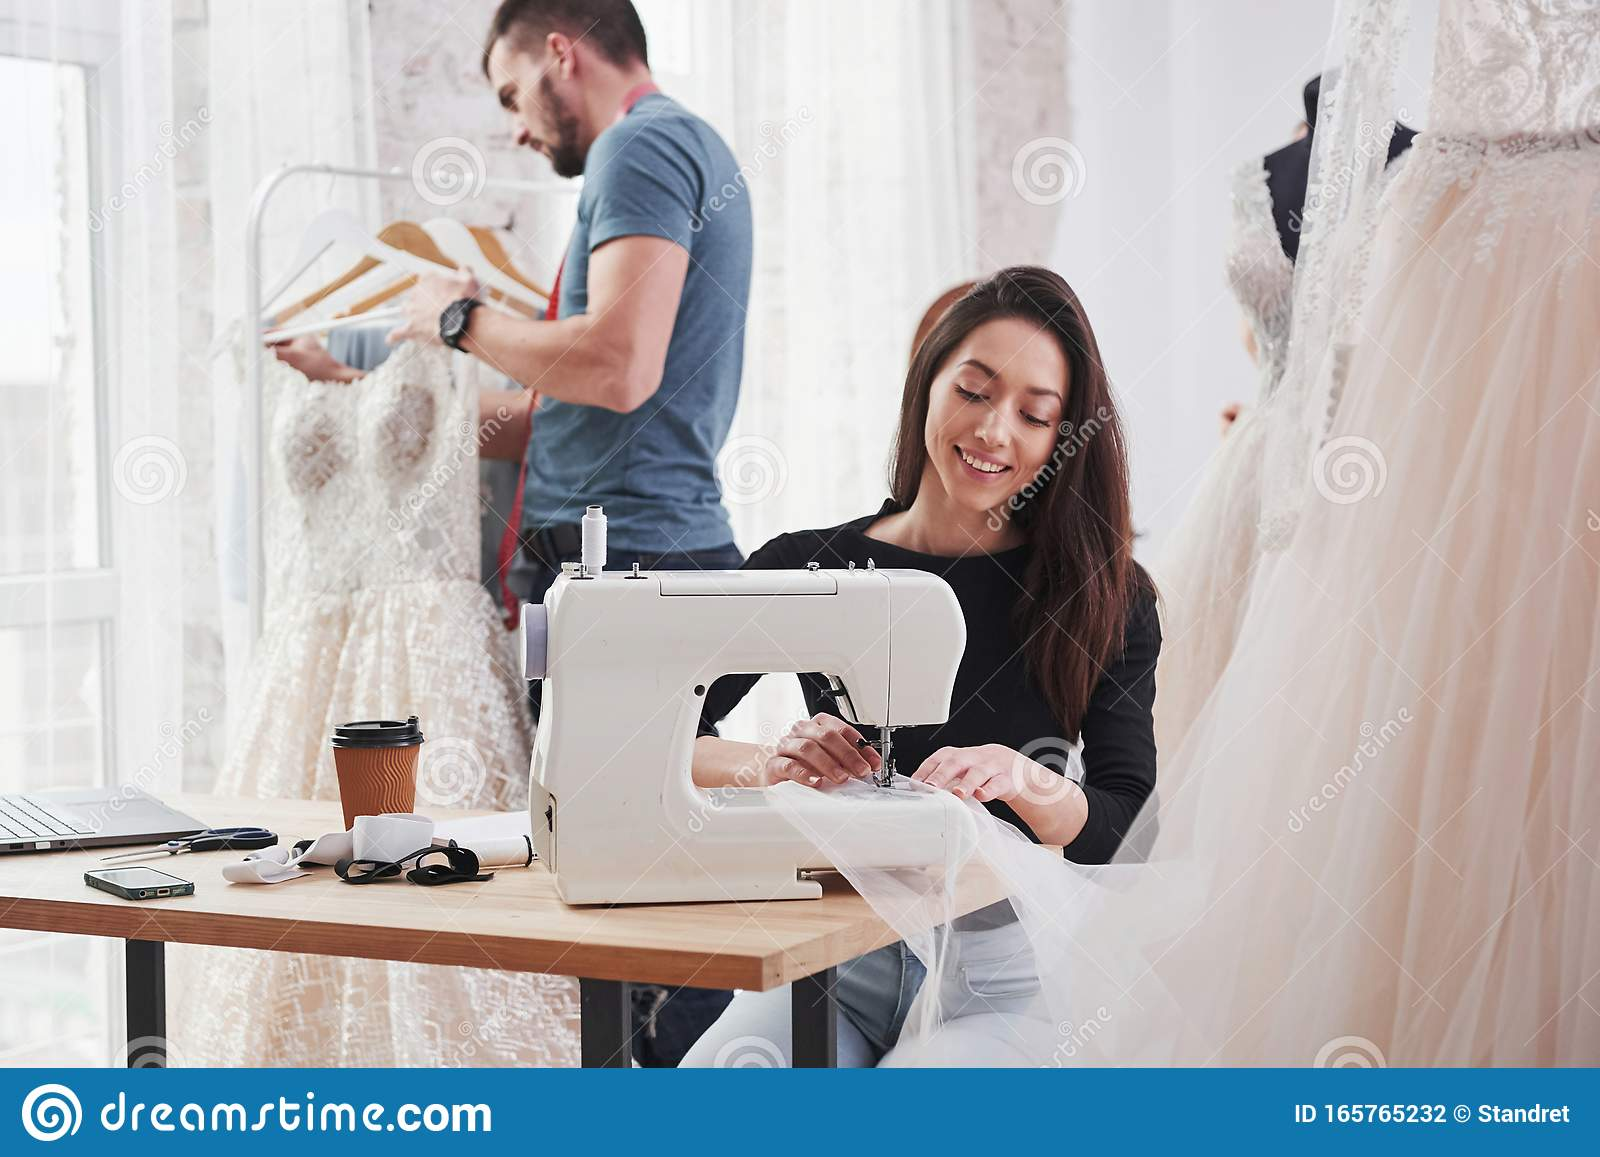 It S Important To Love Your Job Female Fashion Designer Works On The New Clothes In The Workshop With Man Behind Stock Photo Image Of Custom Busy 165765232